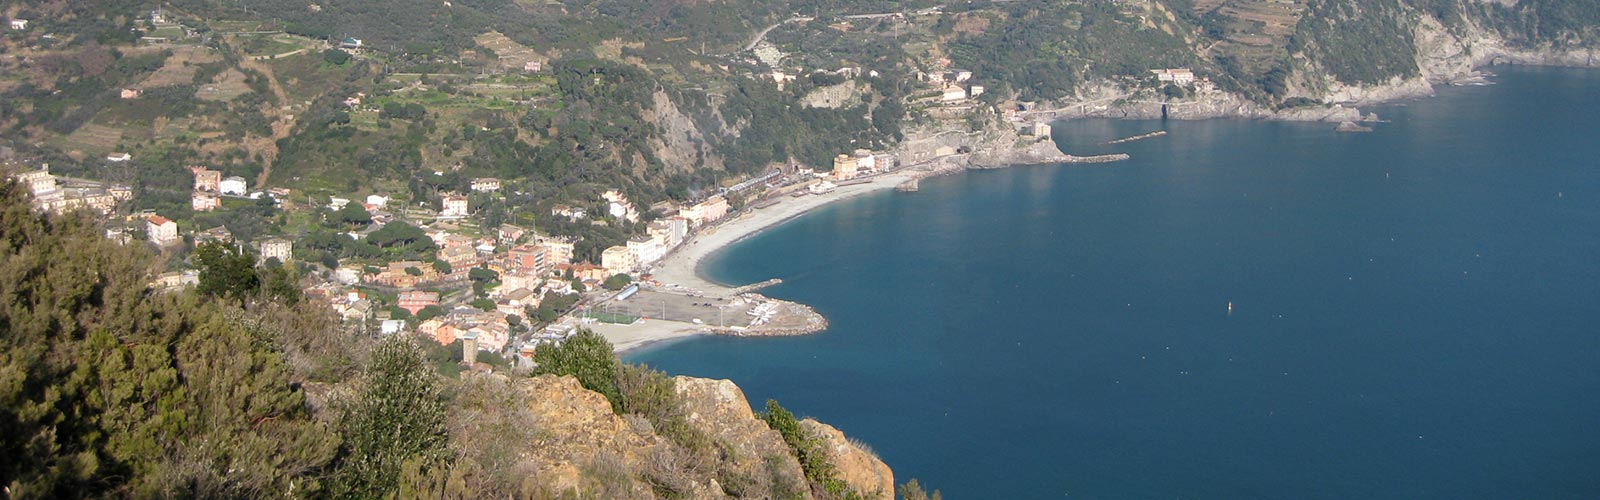 View of Monterosso from the trail to Punta Mesco and Levanto - Hotel Punta Mesco - Monterosso al Mare Cinque Terre Liguria Italy